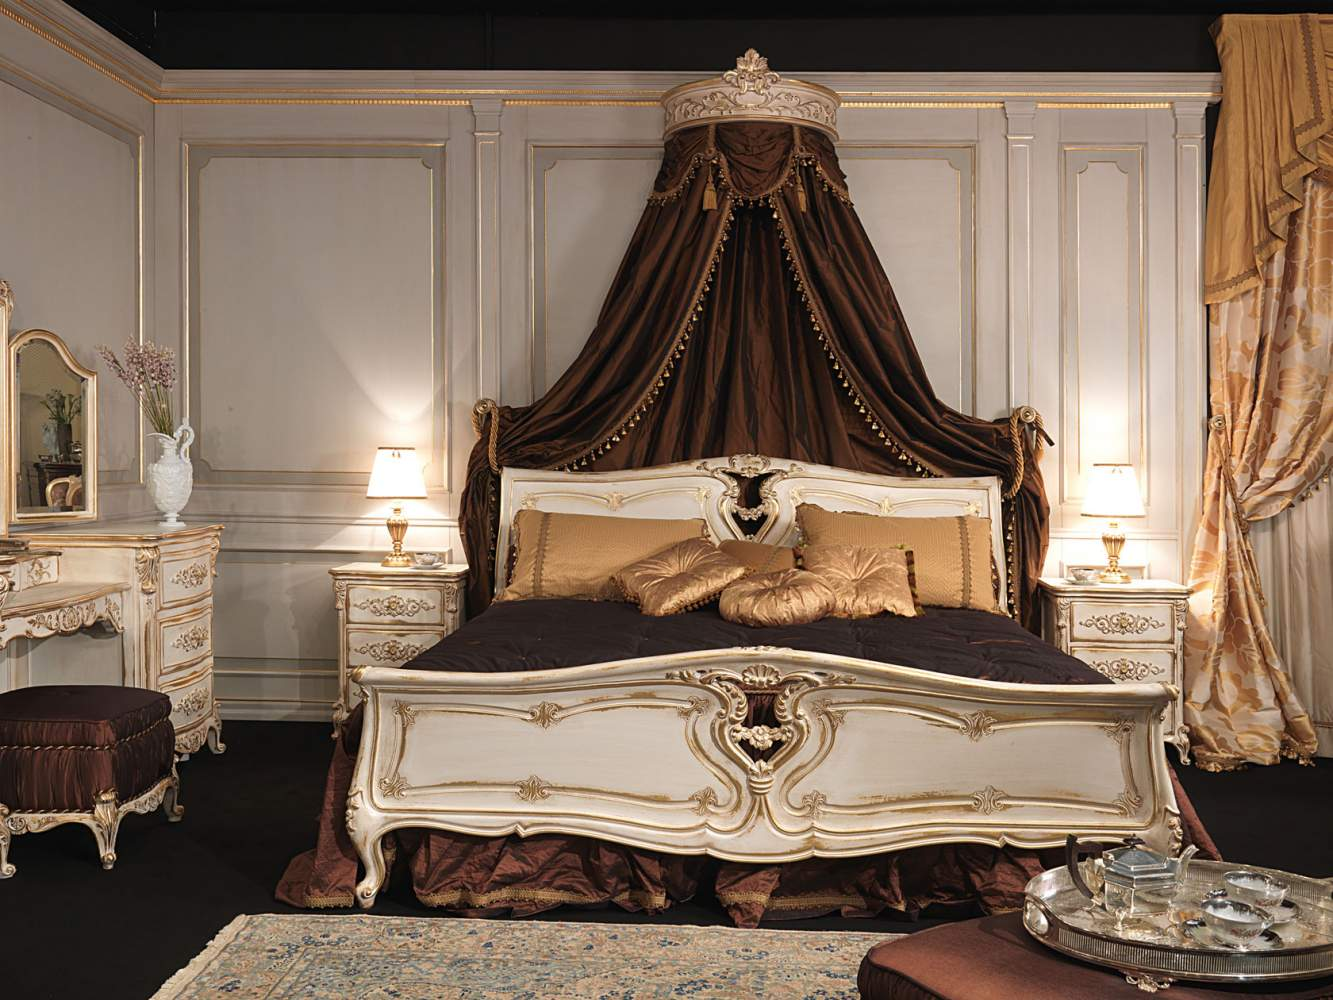 classic louis xvi bedroom carved wood bed with wall. Black Bedroom Furniture Sets. Home Design Ideas